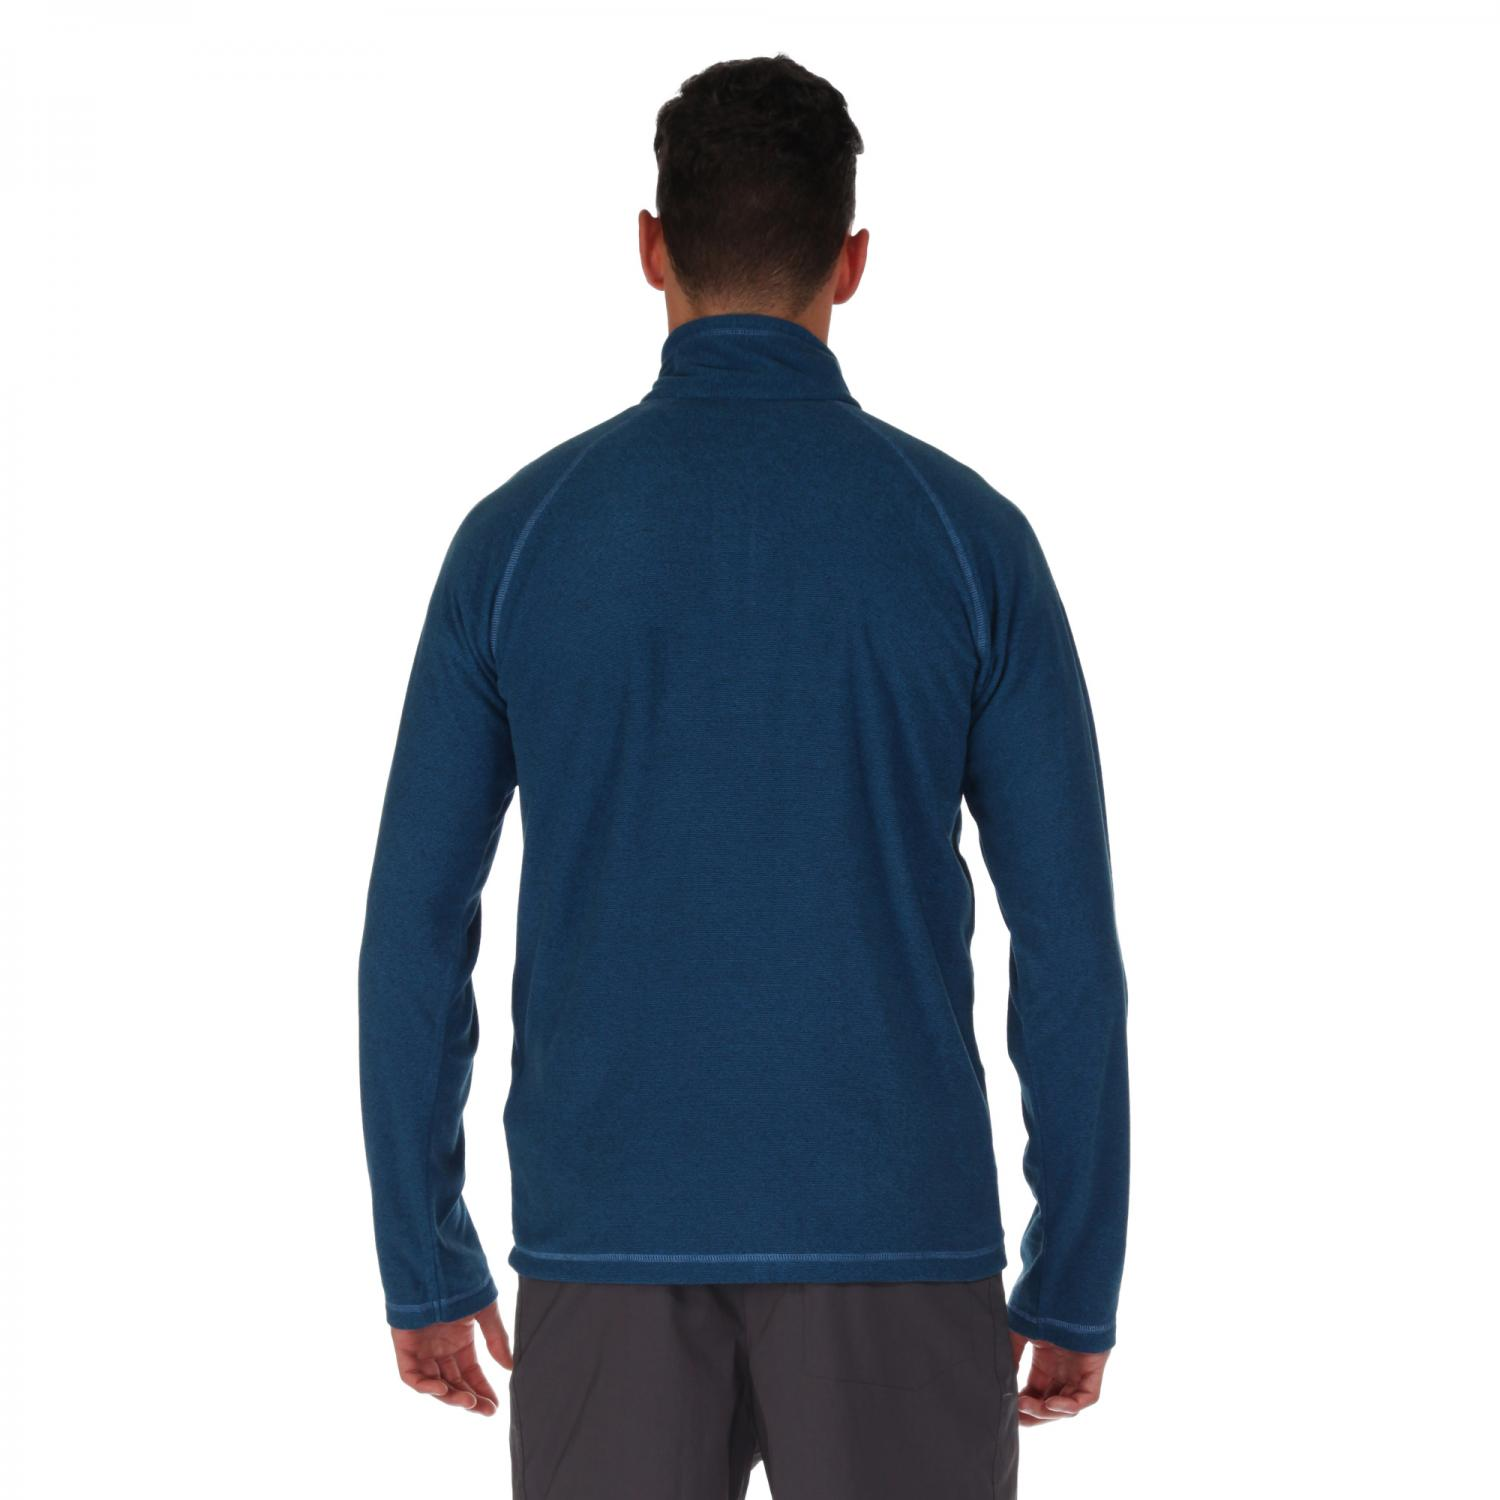 Regatta-Mens-Montes-Lightweight-Half-Zip-Summer-Fleece-Top